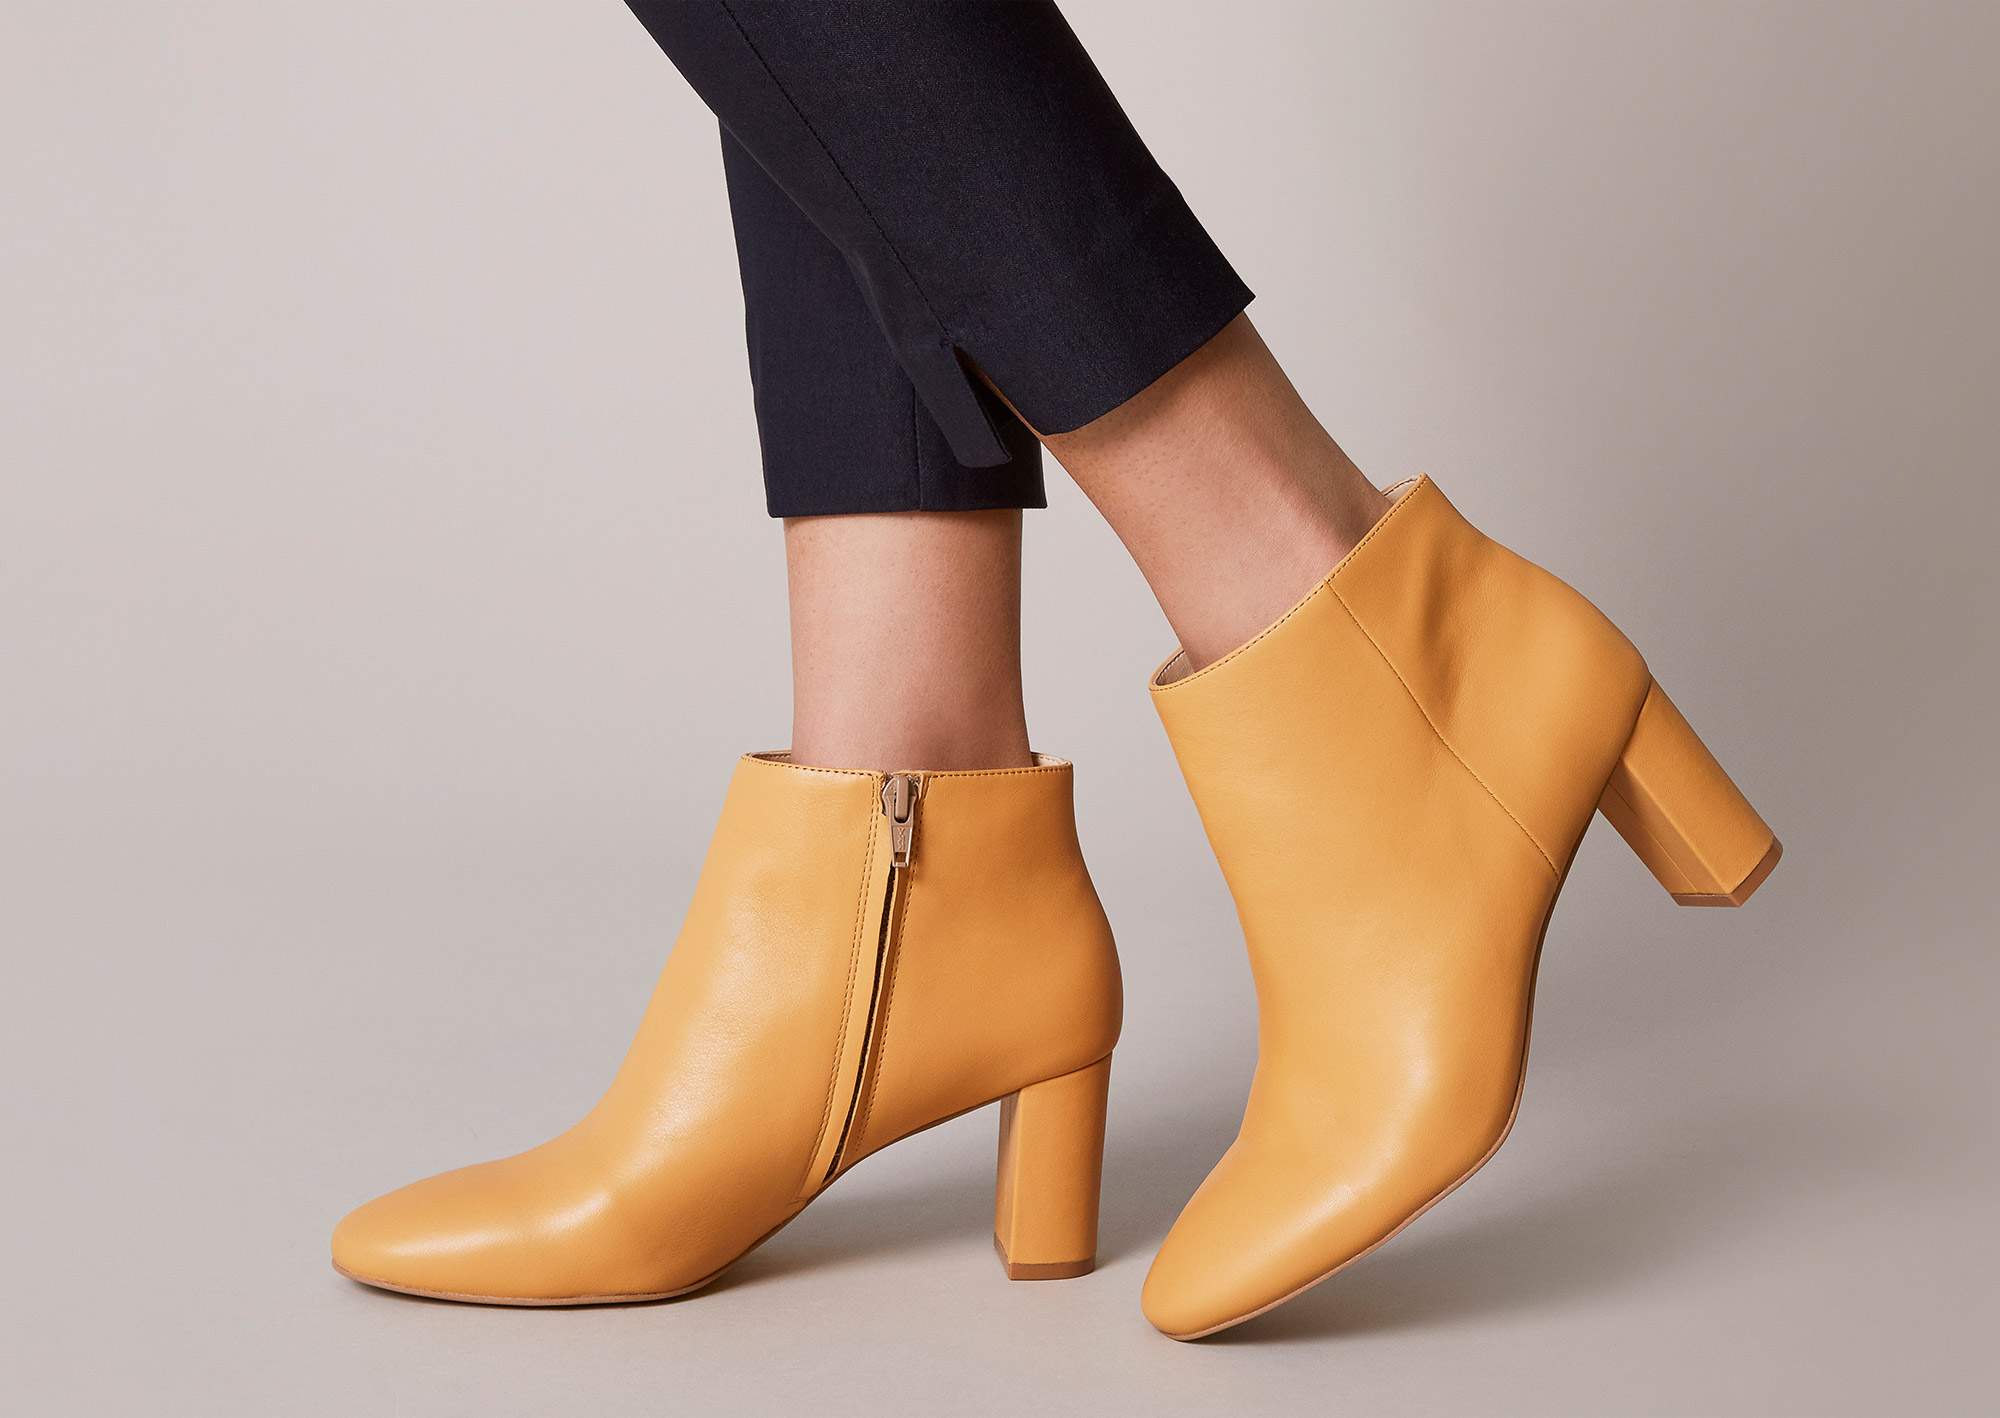 Tan leather boots for business casual outfit